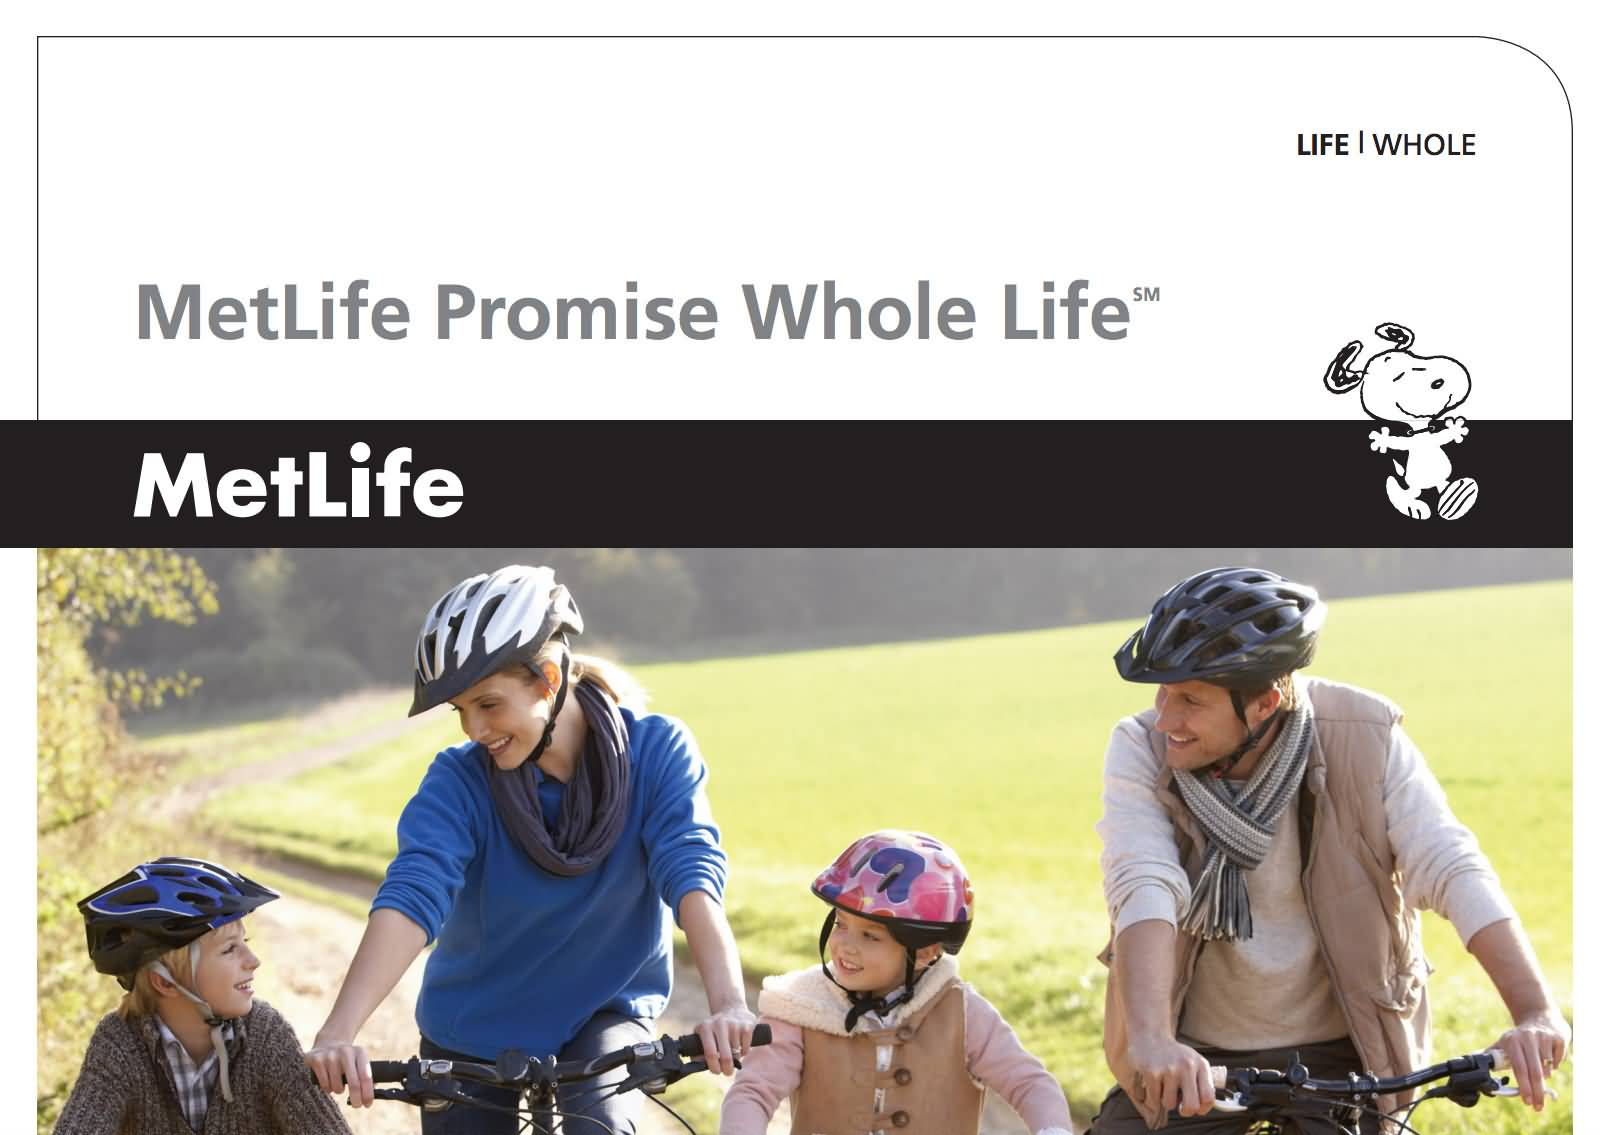 Life Insurance Quotes Whole Life Metlife Whole Life Insurance Quotes 04  Quotesbae